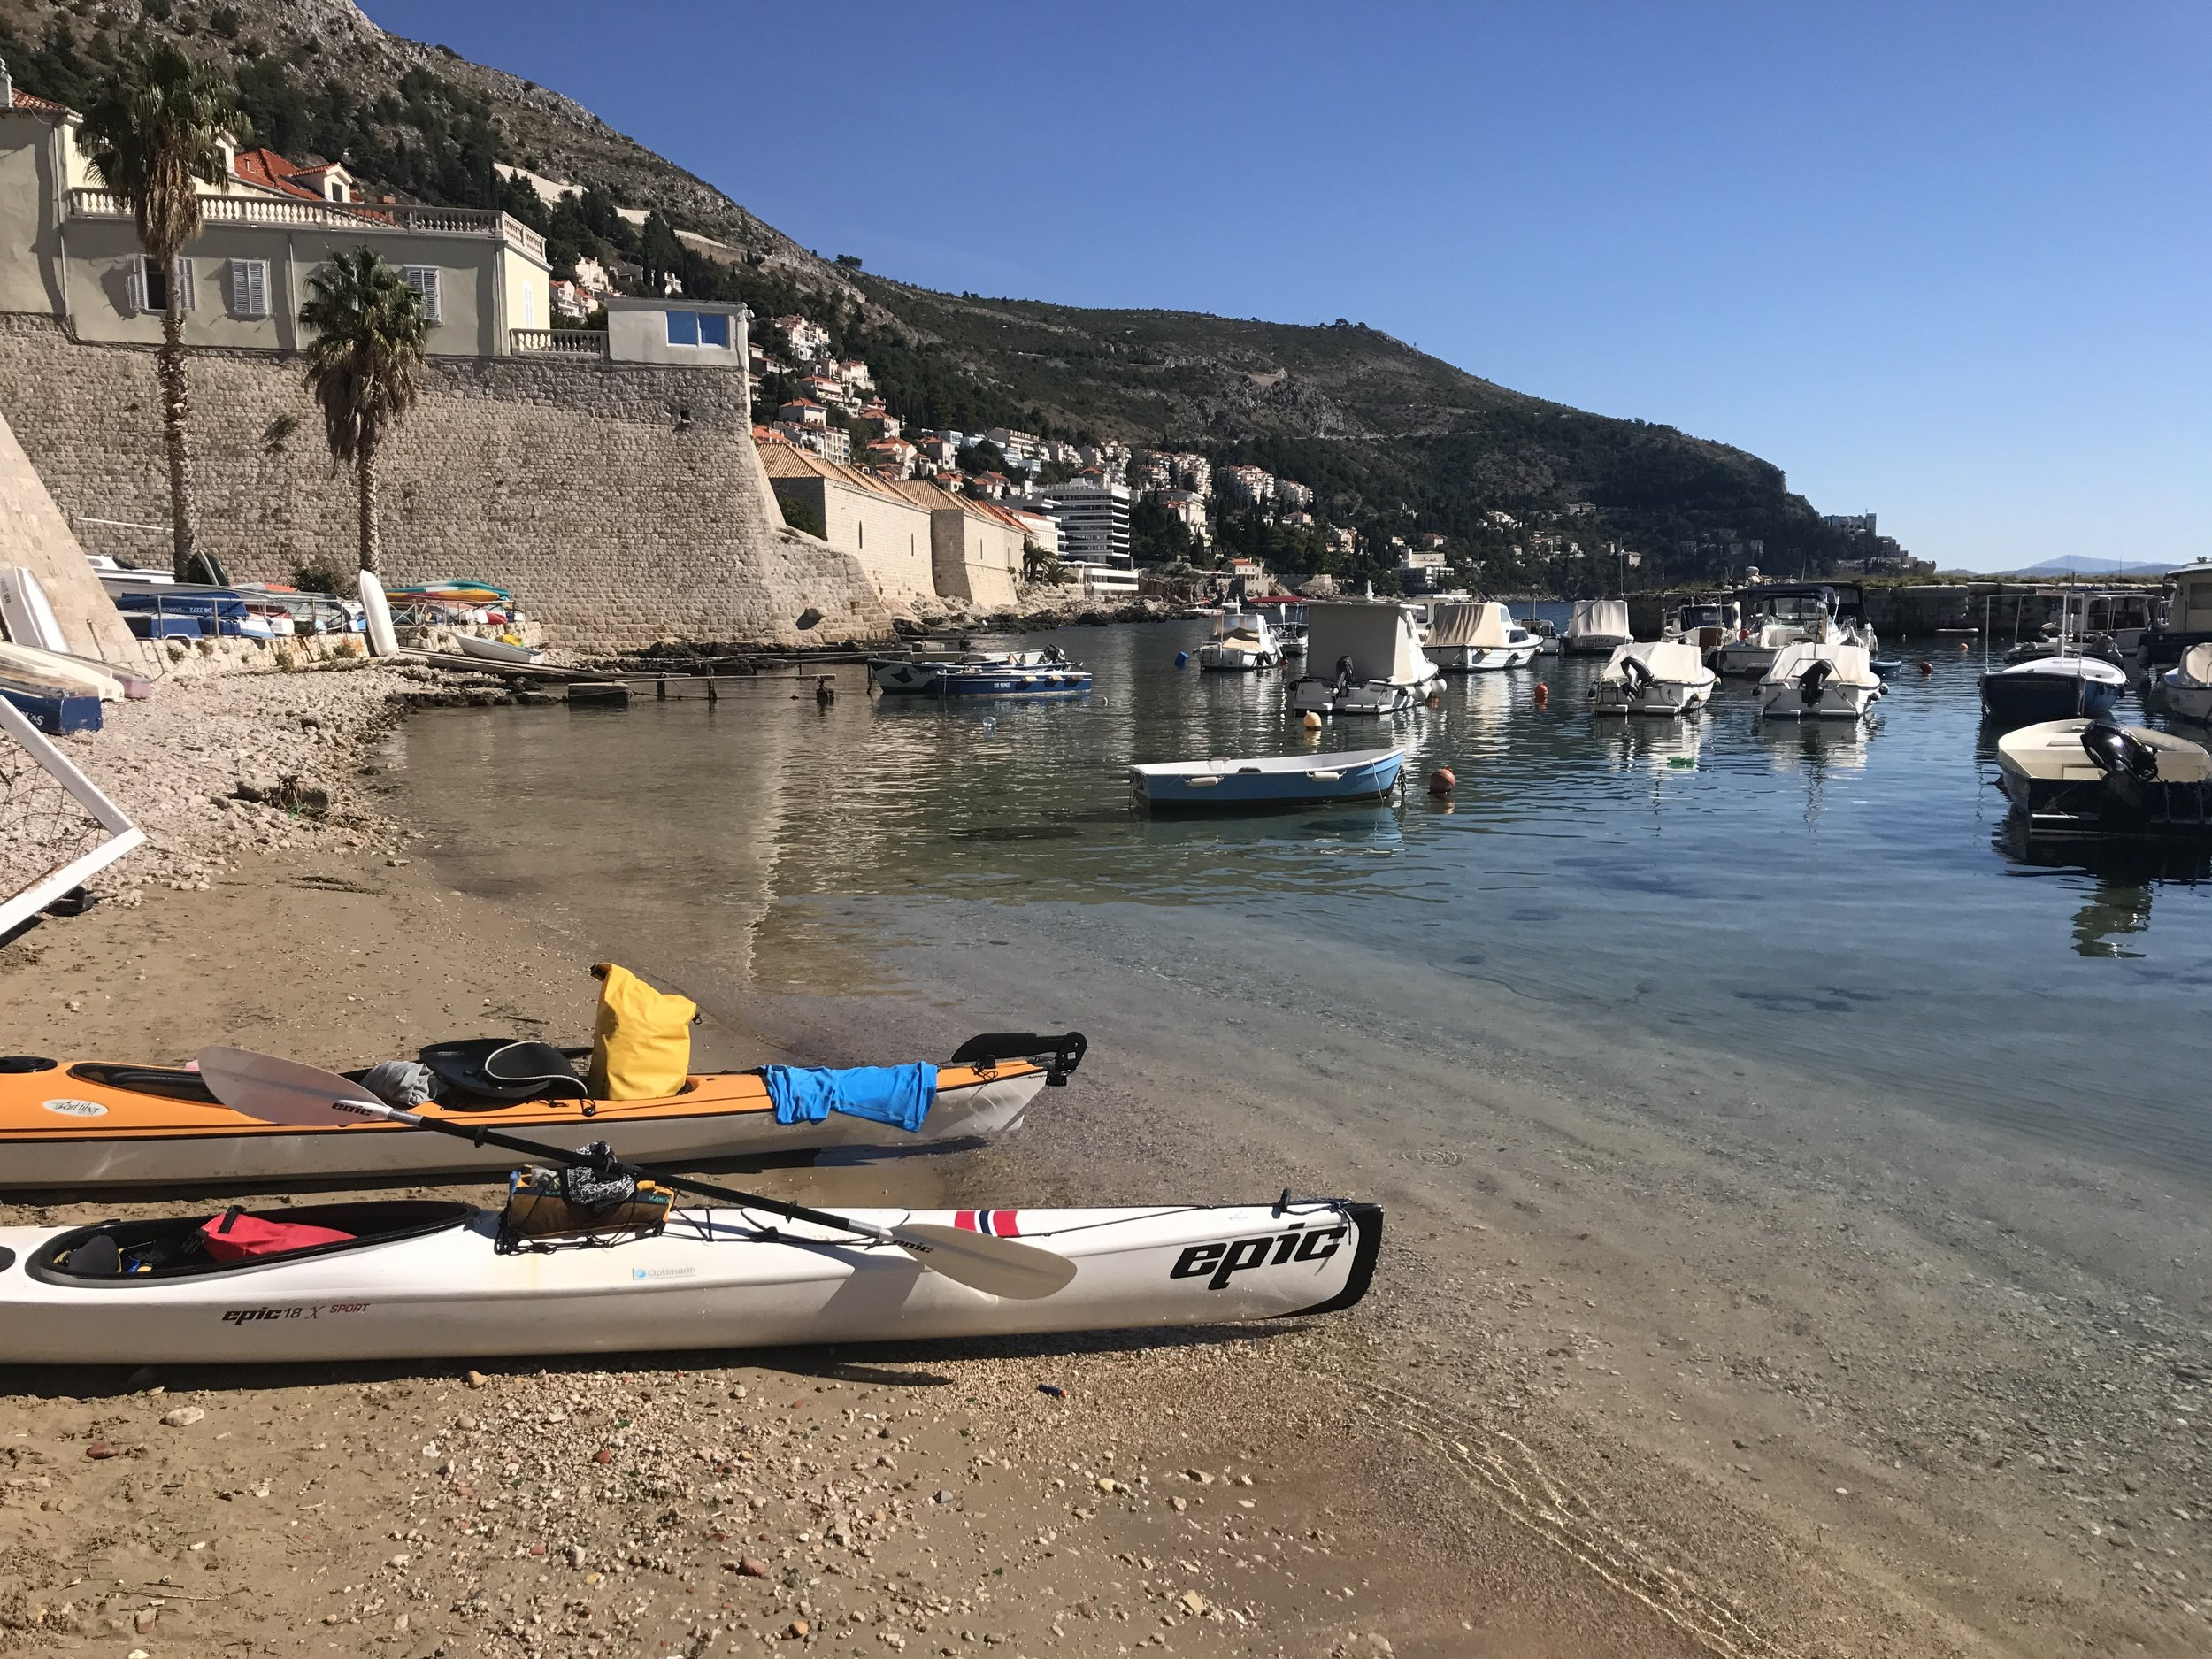 We find a place to park our kayaks. No problem.